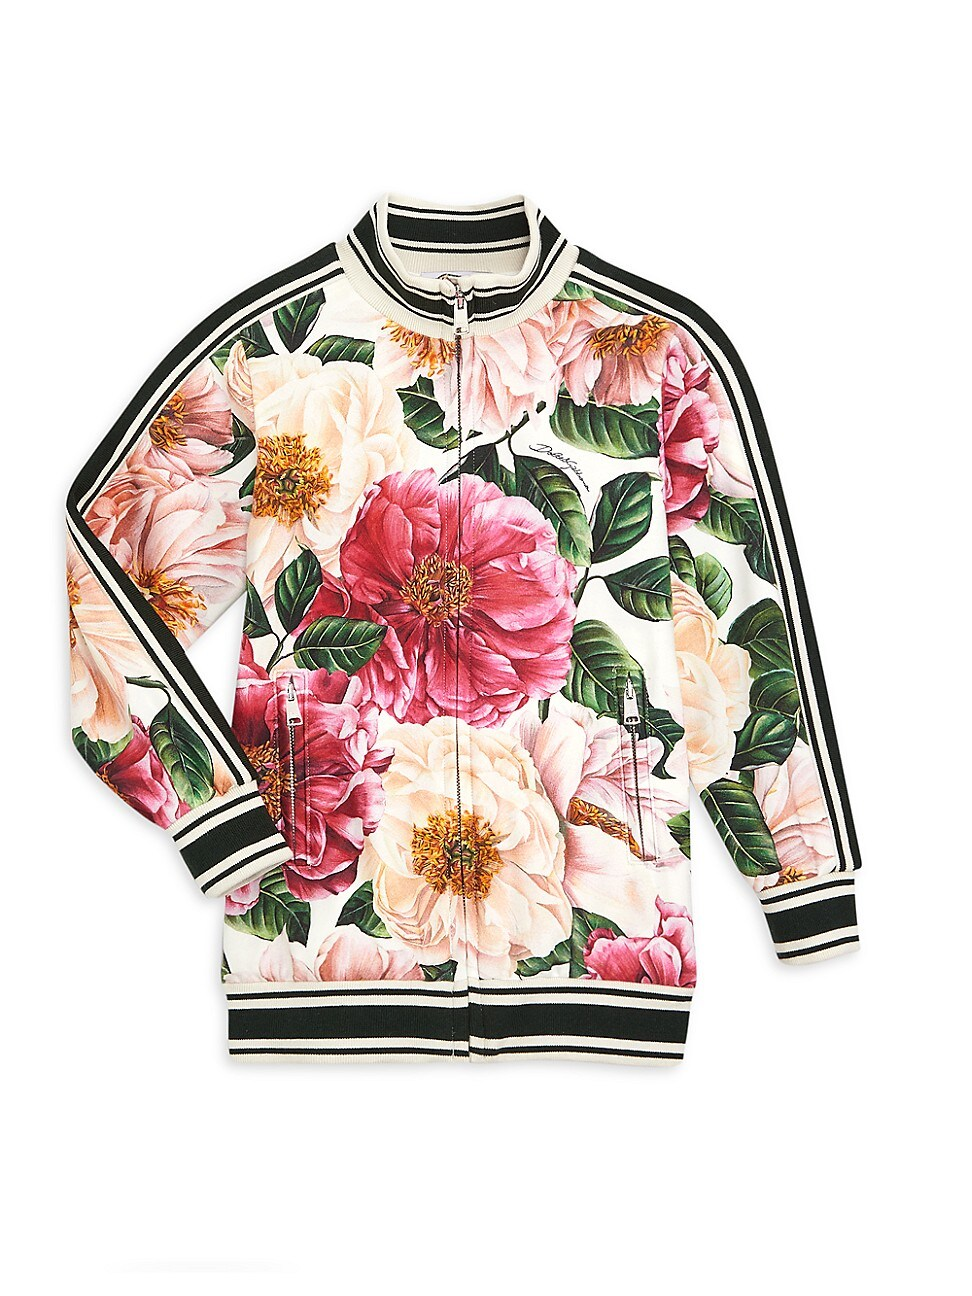 Dolce & Gabbana LITTLE GIRL'S & GIRL'S FLORAL ZIP-UP SWEATER